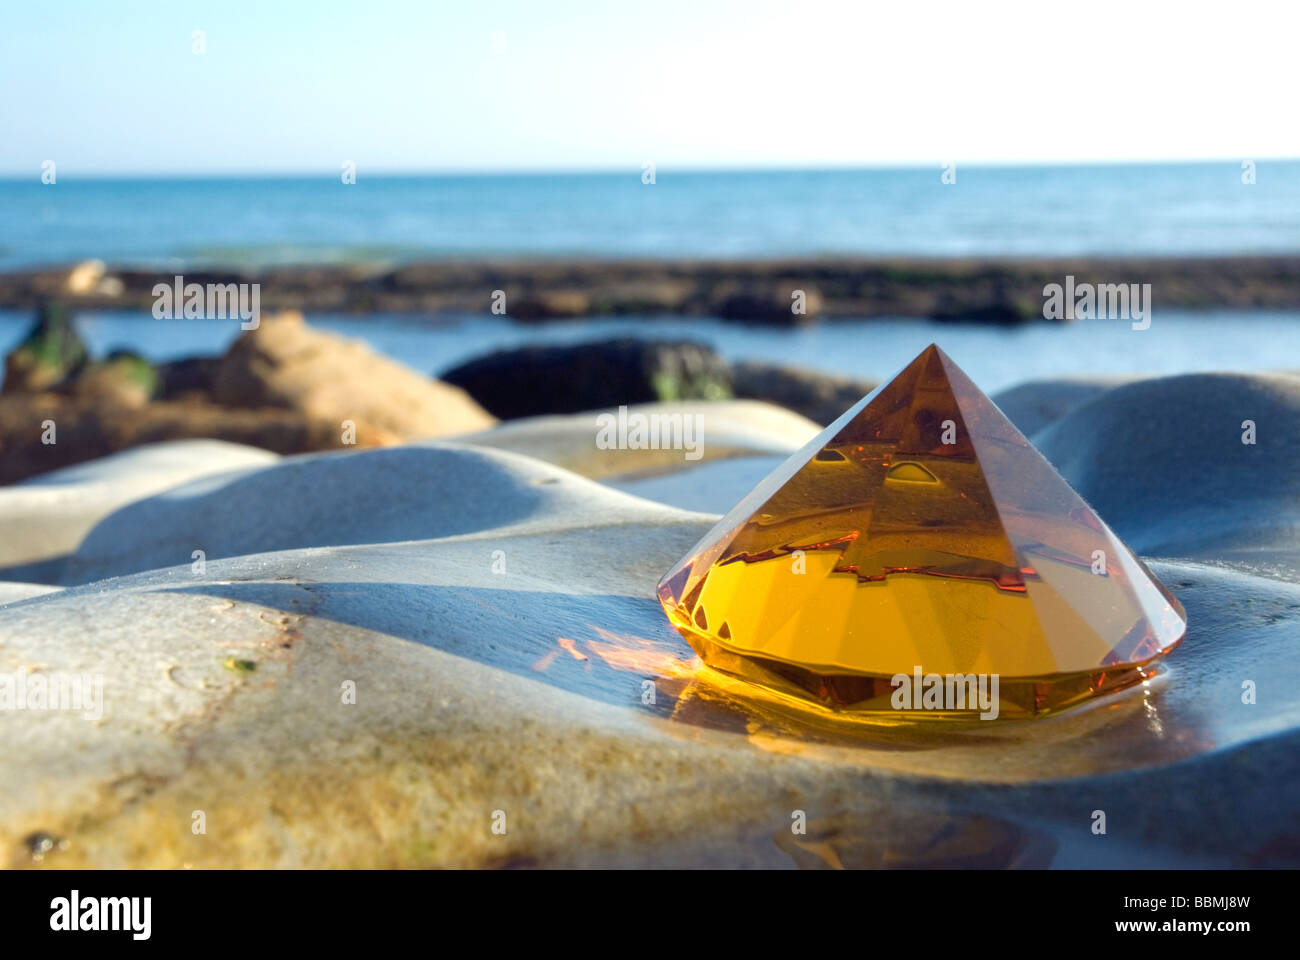 Amber glass pyramid on rock with seawater pool - Stock Image